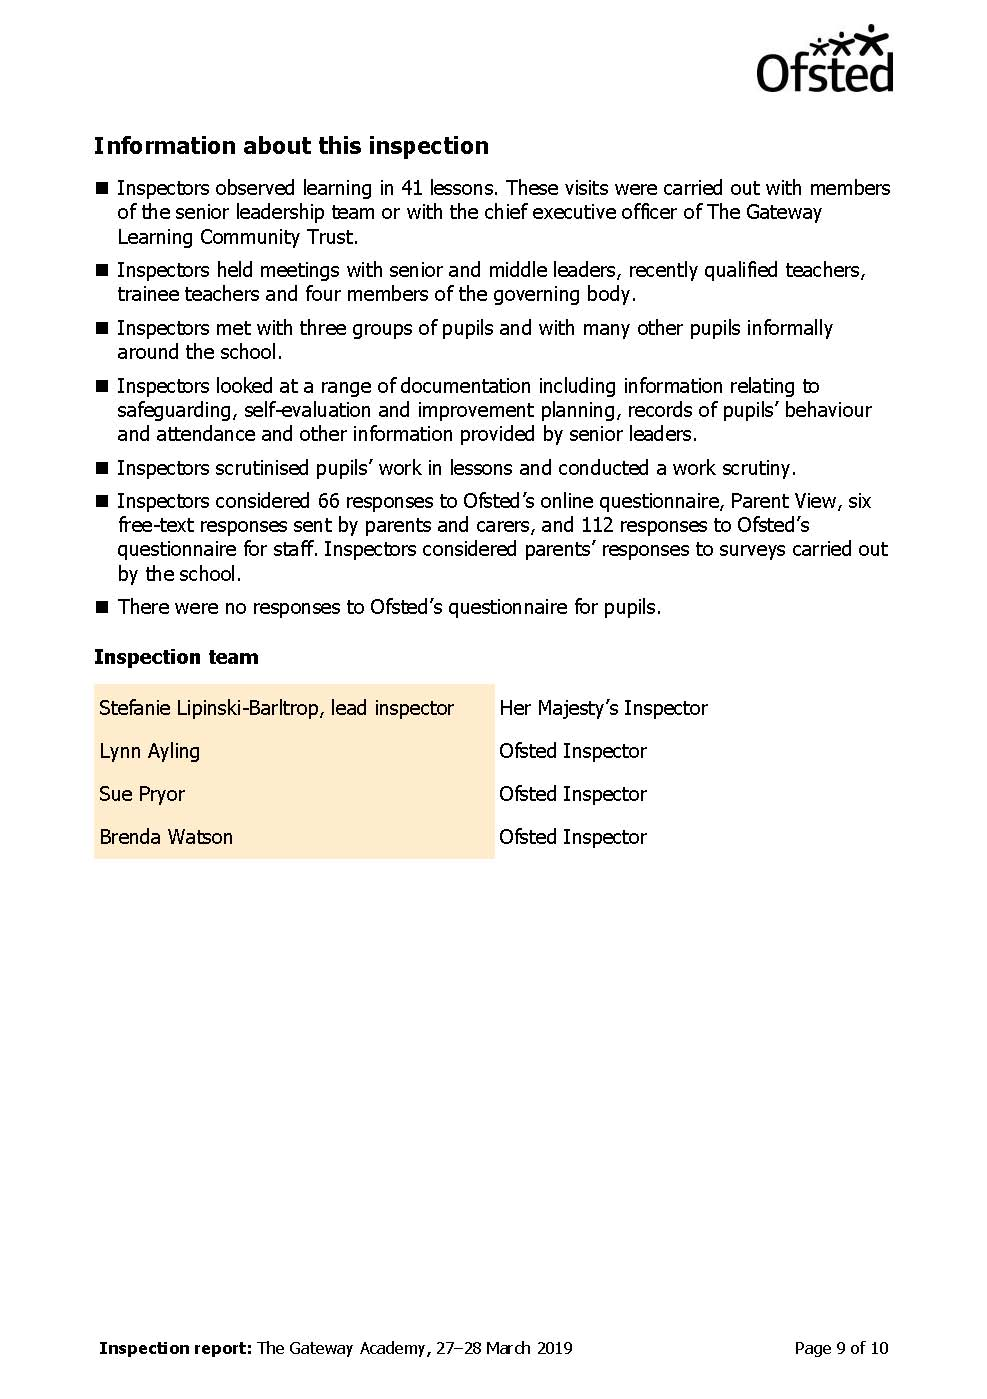 The Gateway Aacdemy Ofsted Report April 2019_Page_09